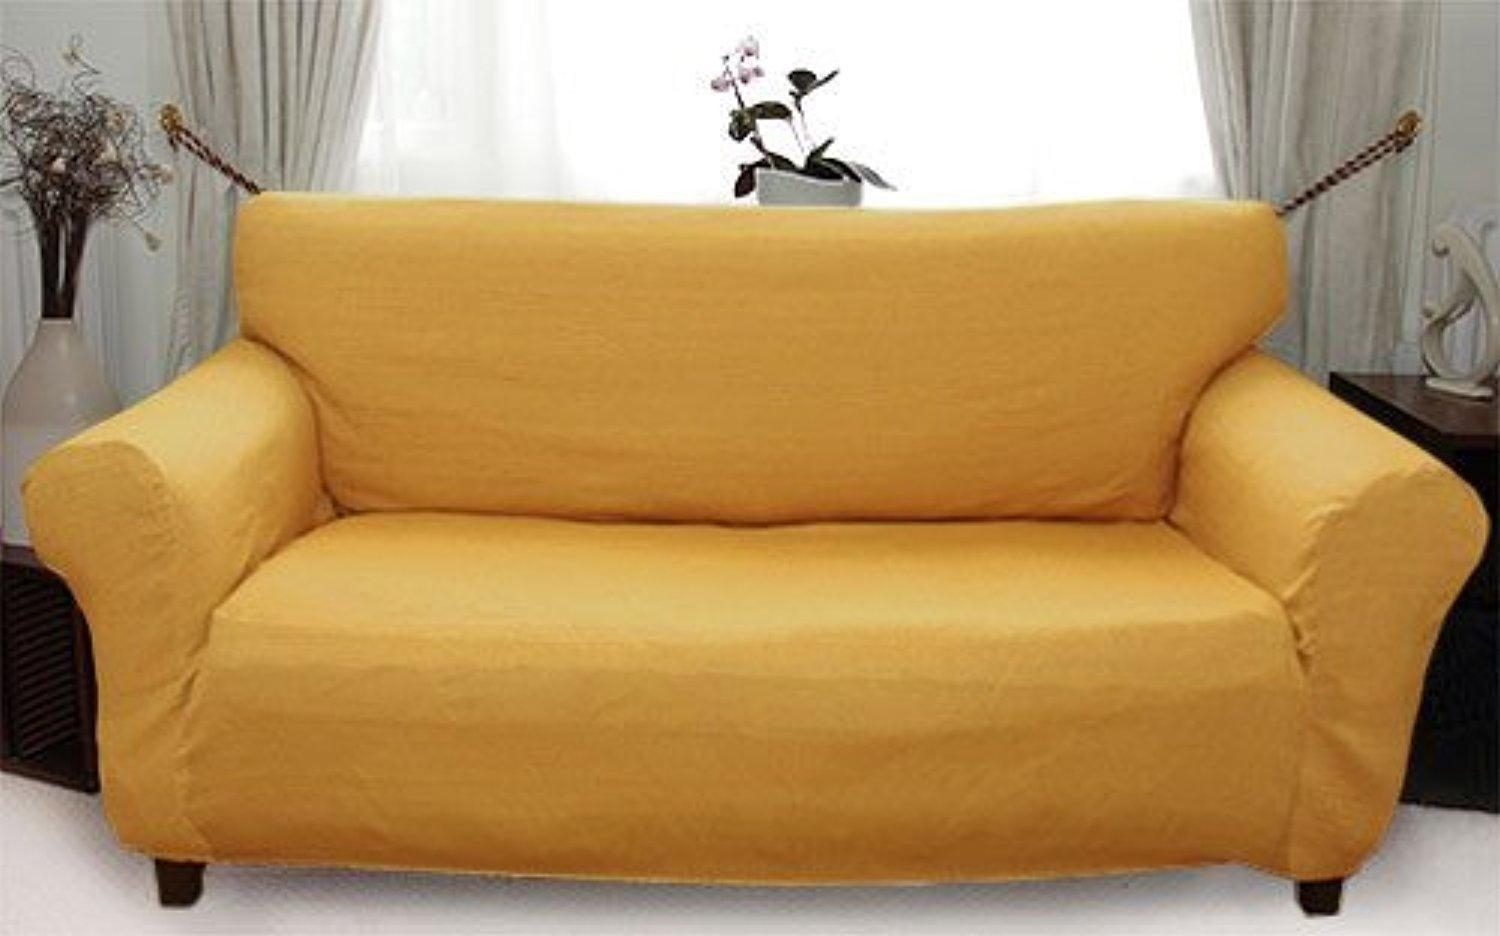 Sofa Covers Uk Stretch | Centerfieldbar Inside Sofa Settee Covers (Image 10 of 22)